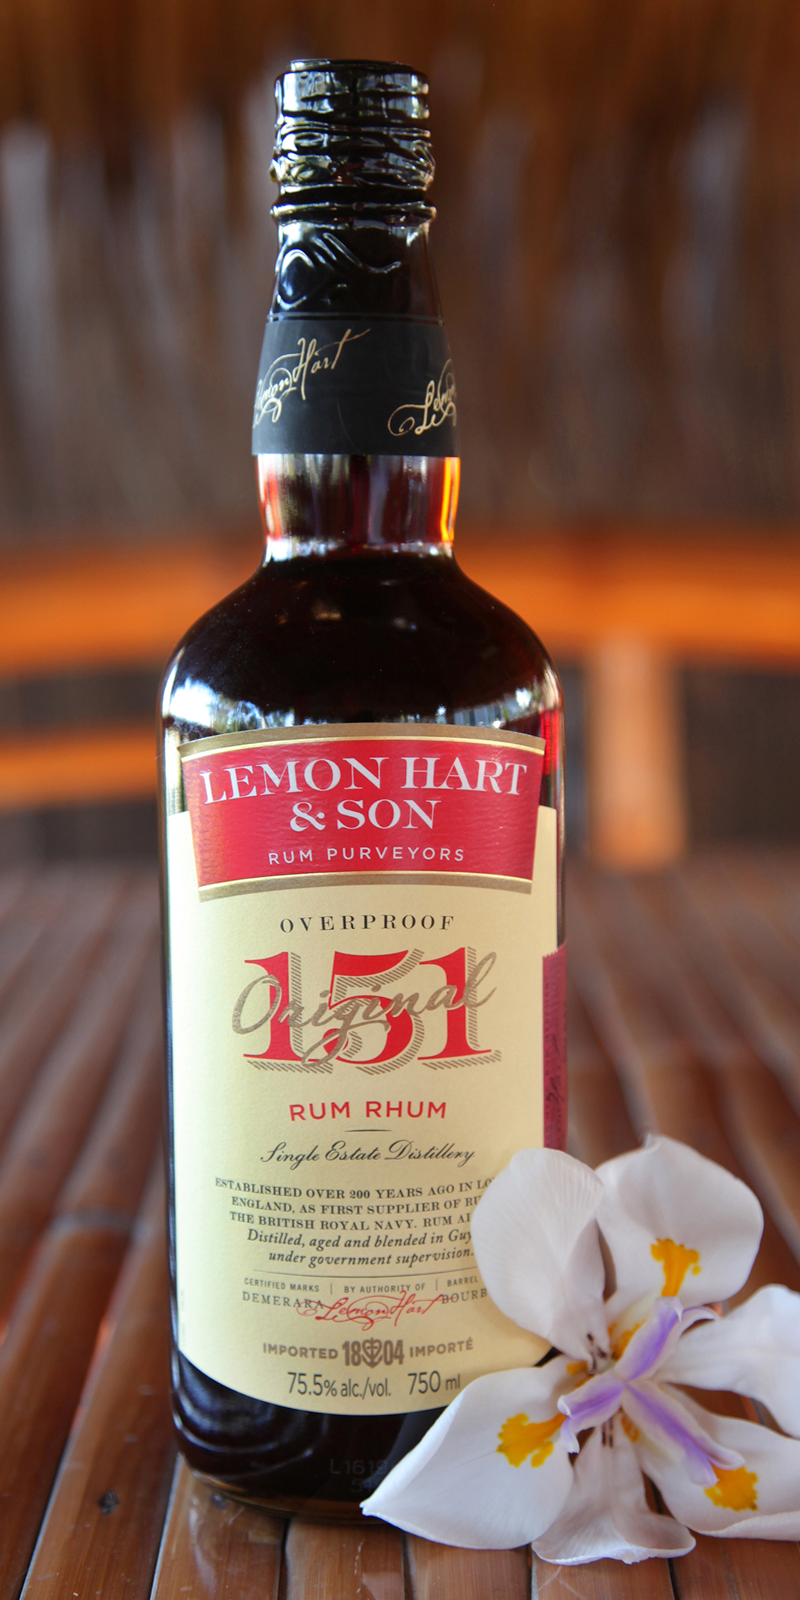 Lemon Heart 151 Rum